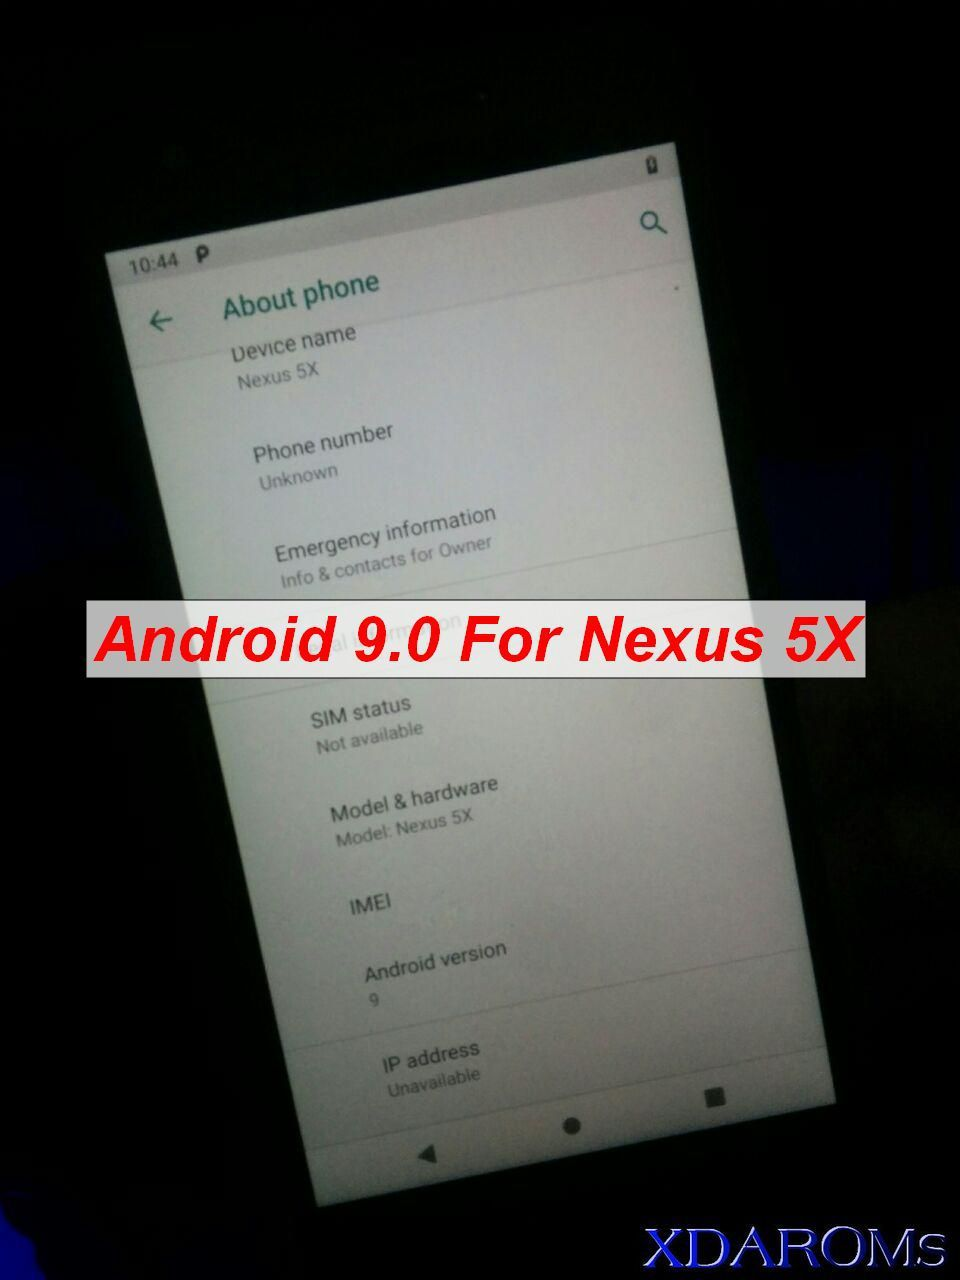 The Android 9 0 Pie is now available for Google Nexus 5X